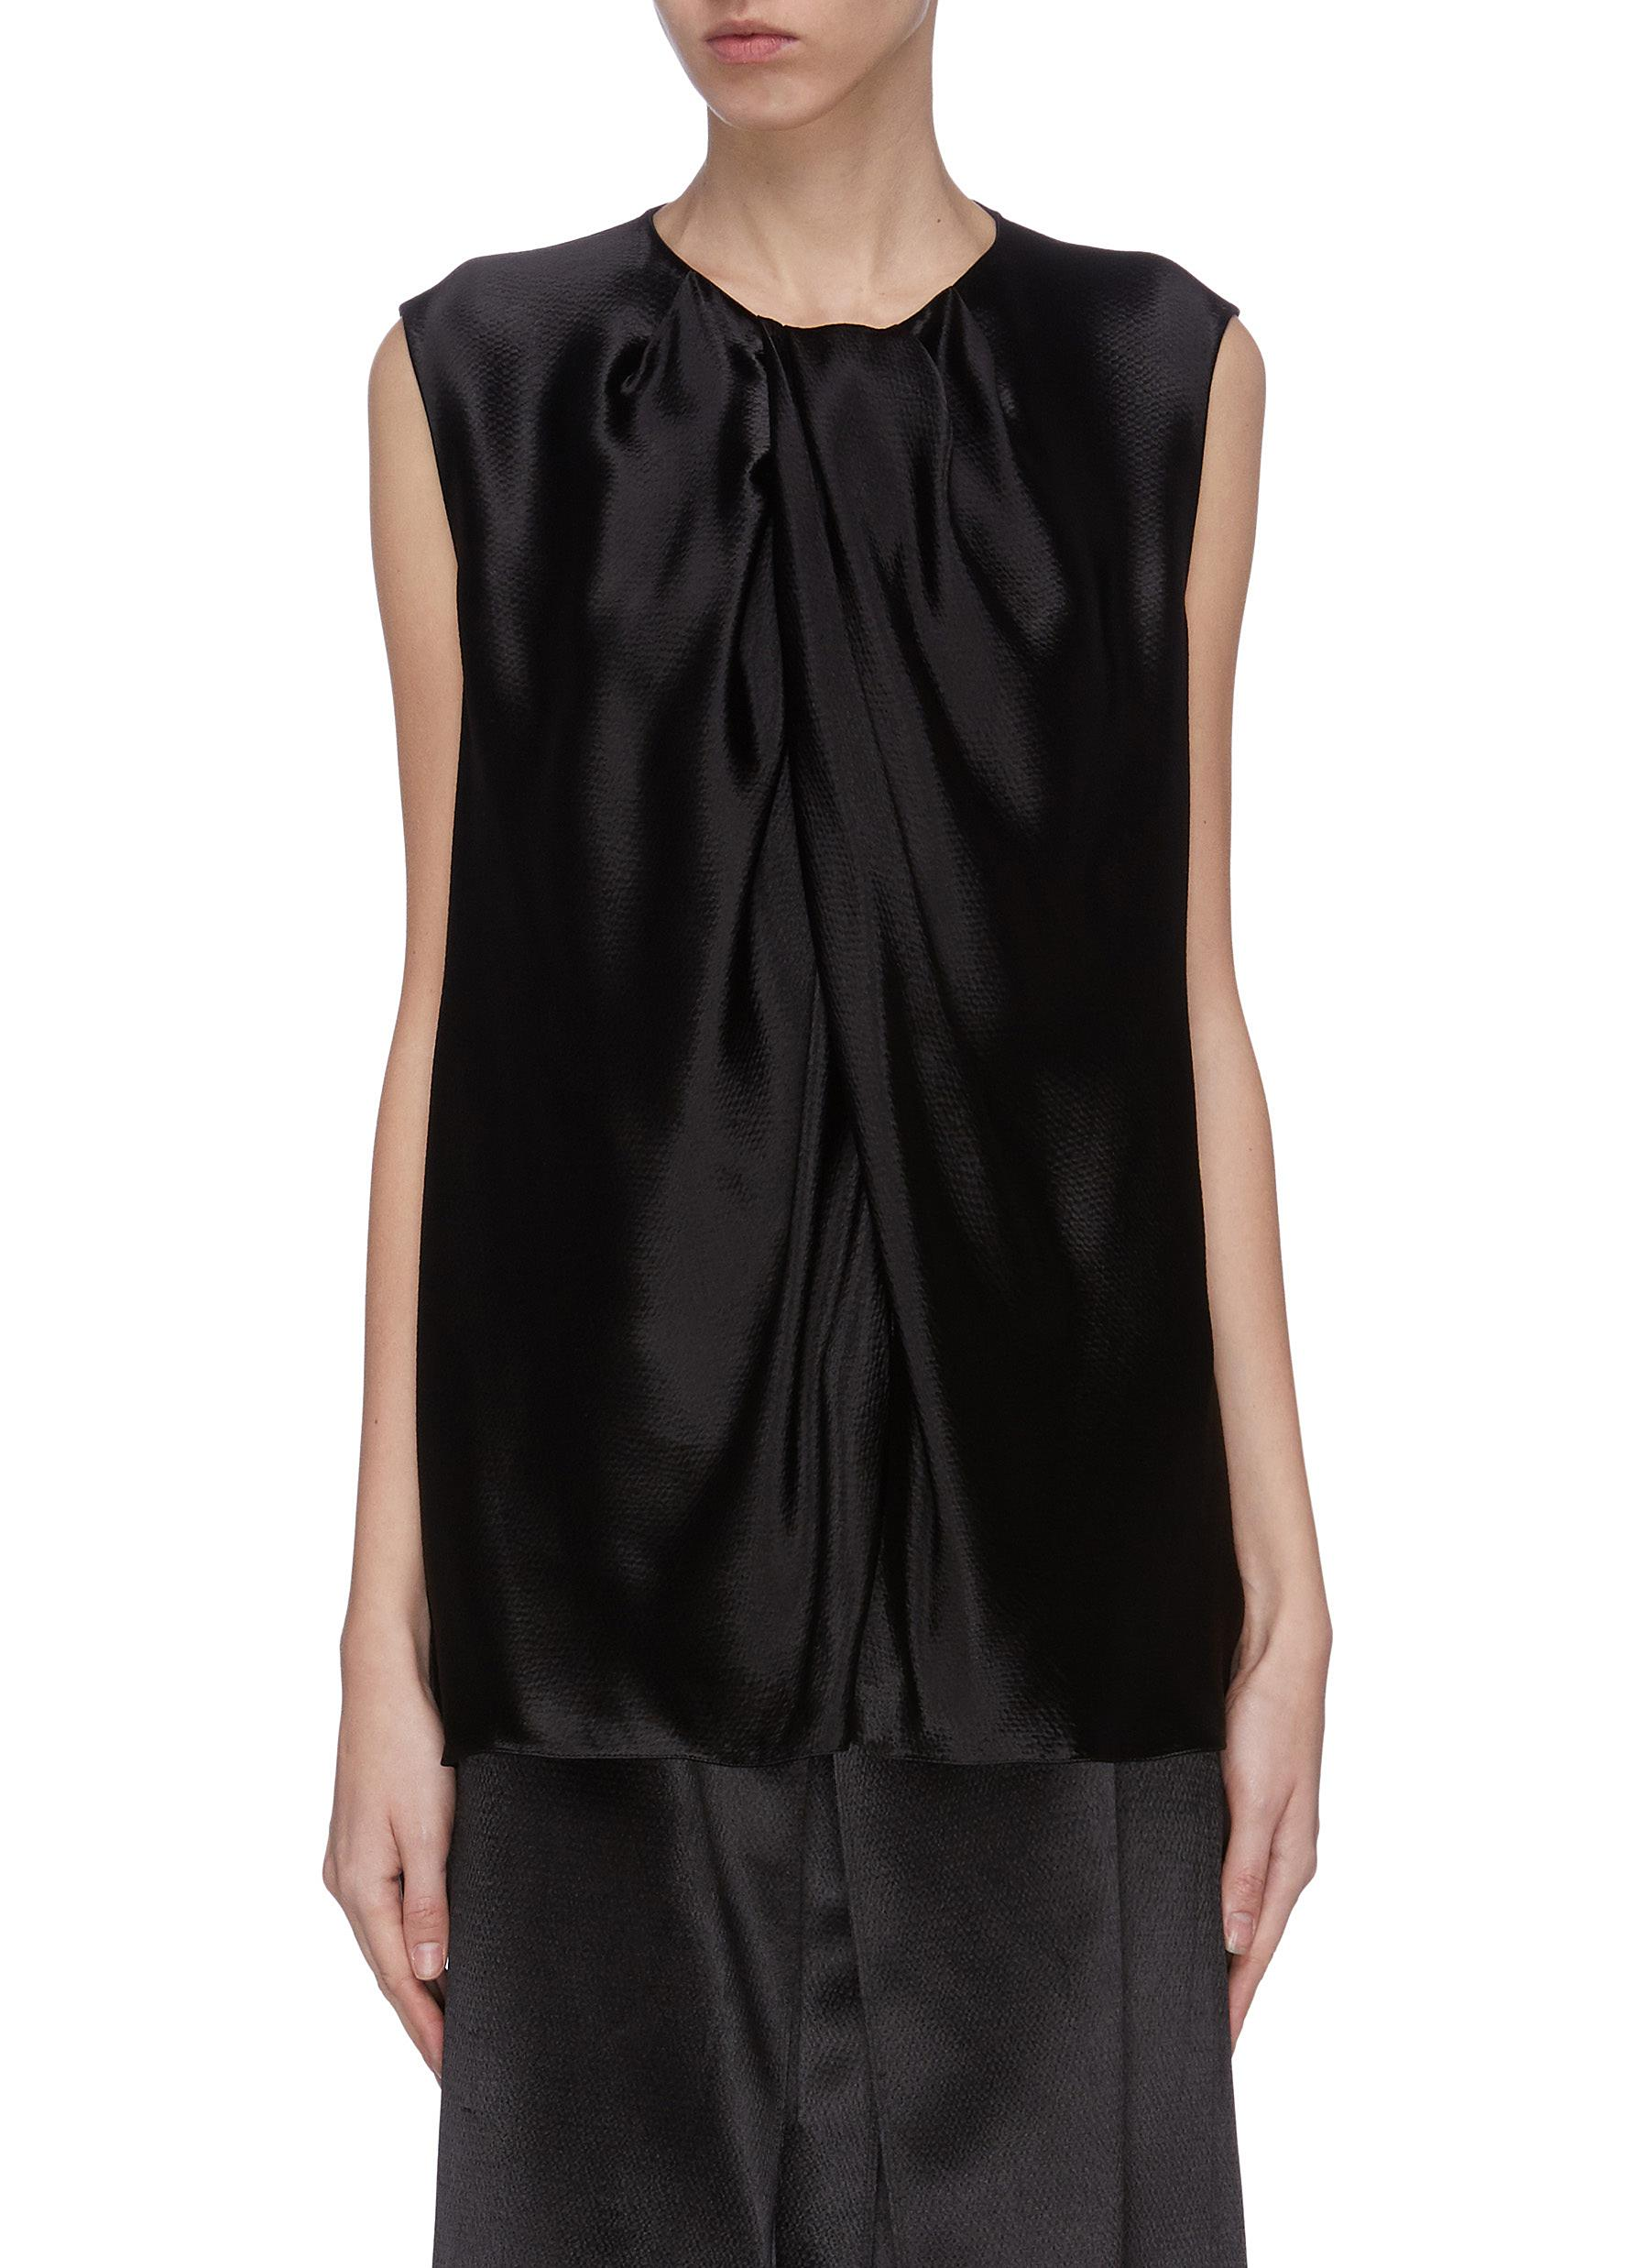 Buy The Row Tops 'Shira' organza top